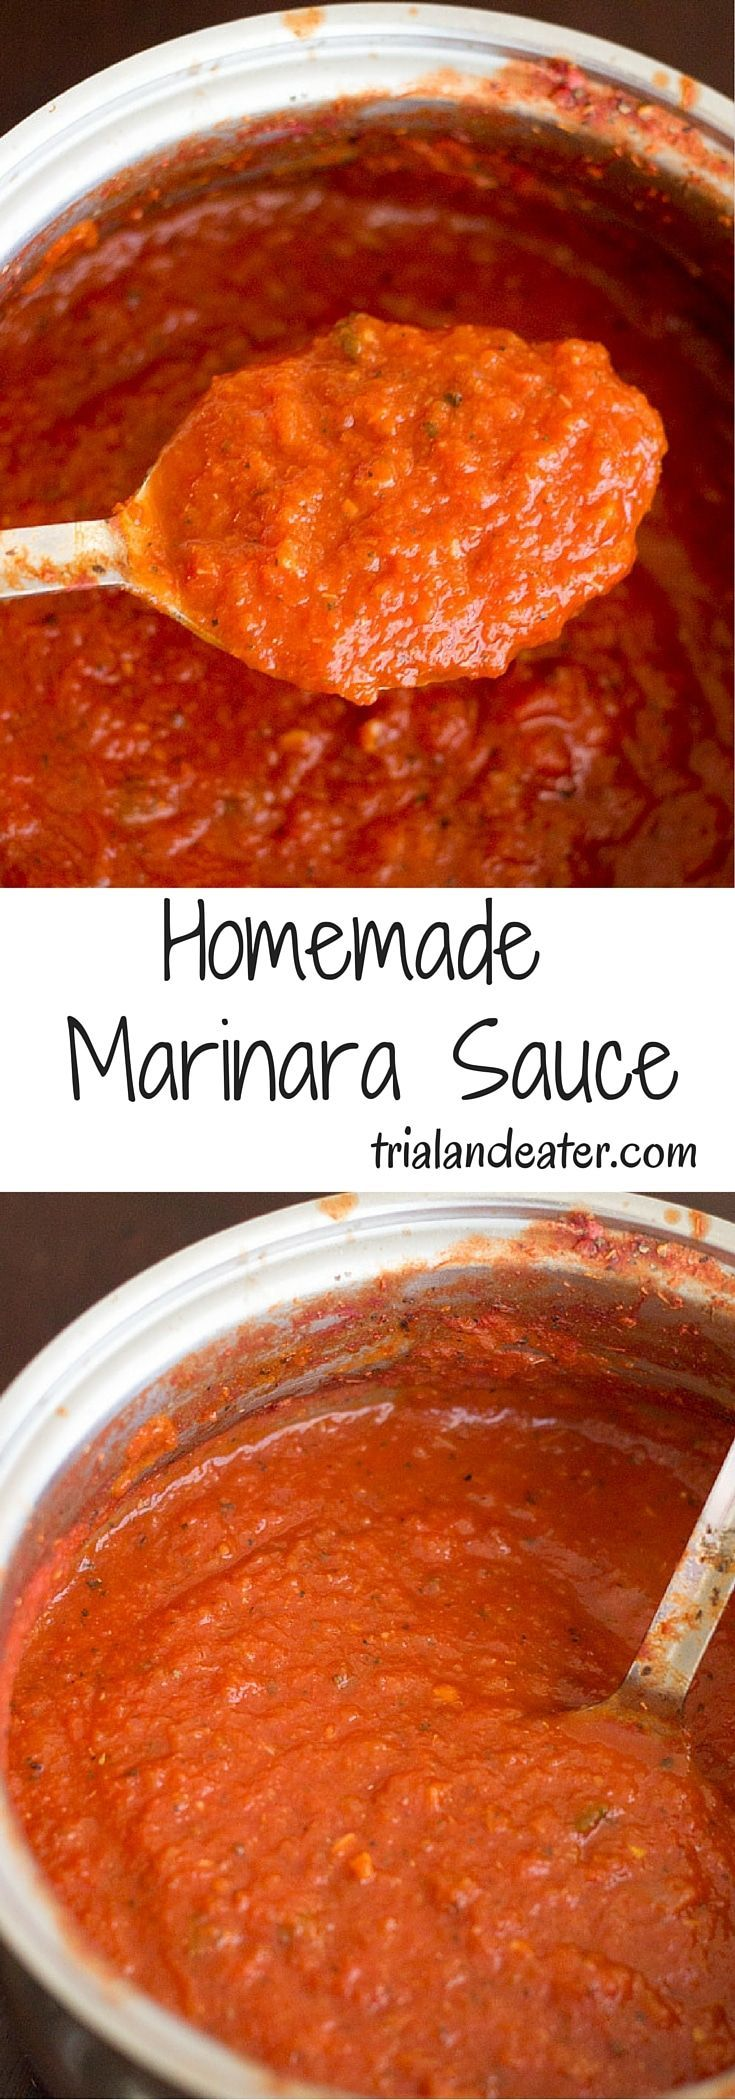 Homemade marinara sauce. So easy, delicious and customizable! Use on pizza, pastas, etc.